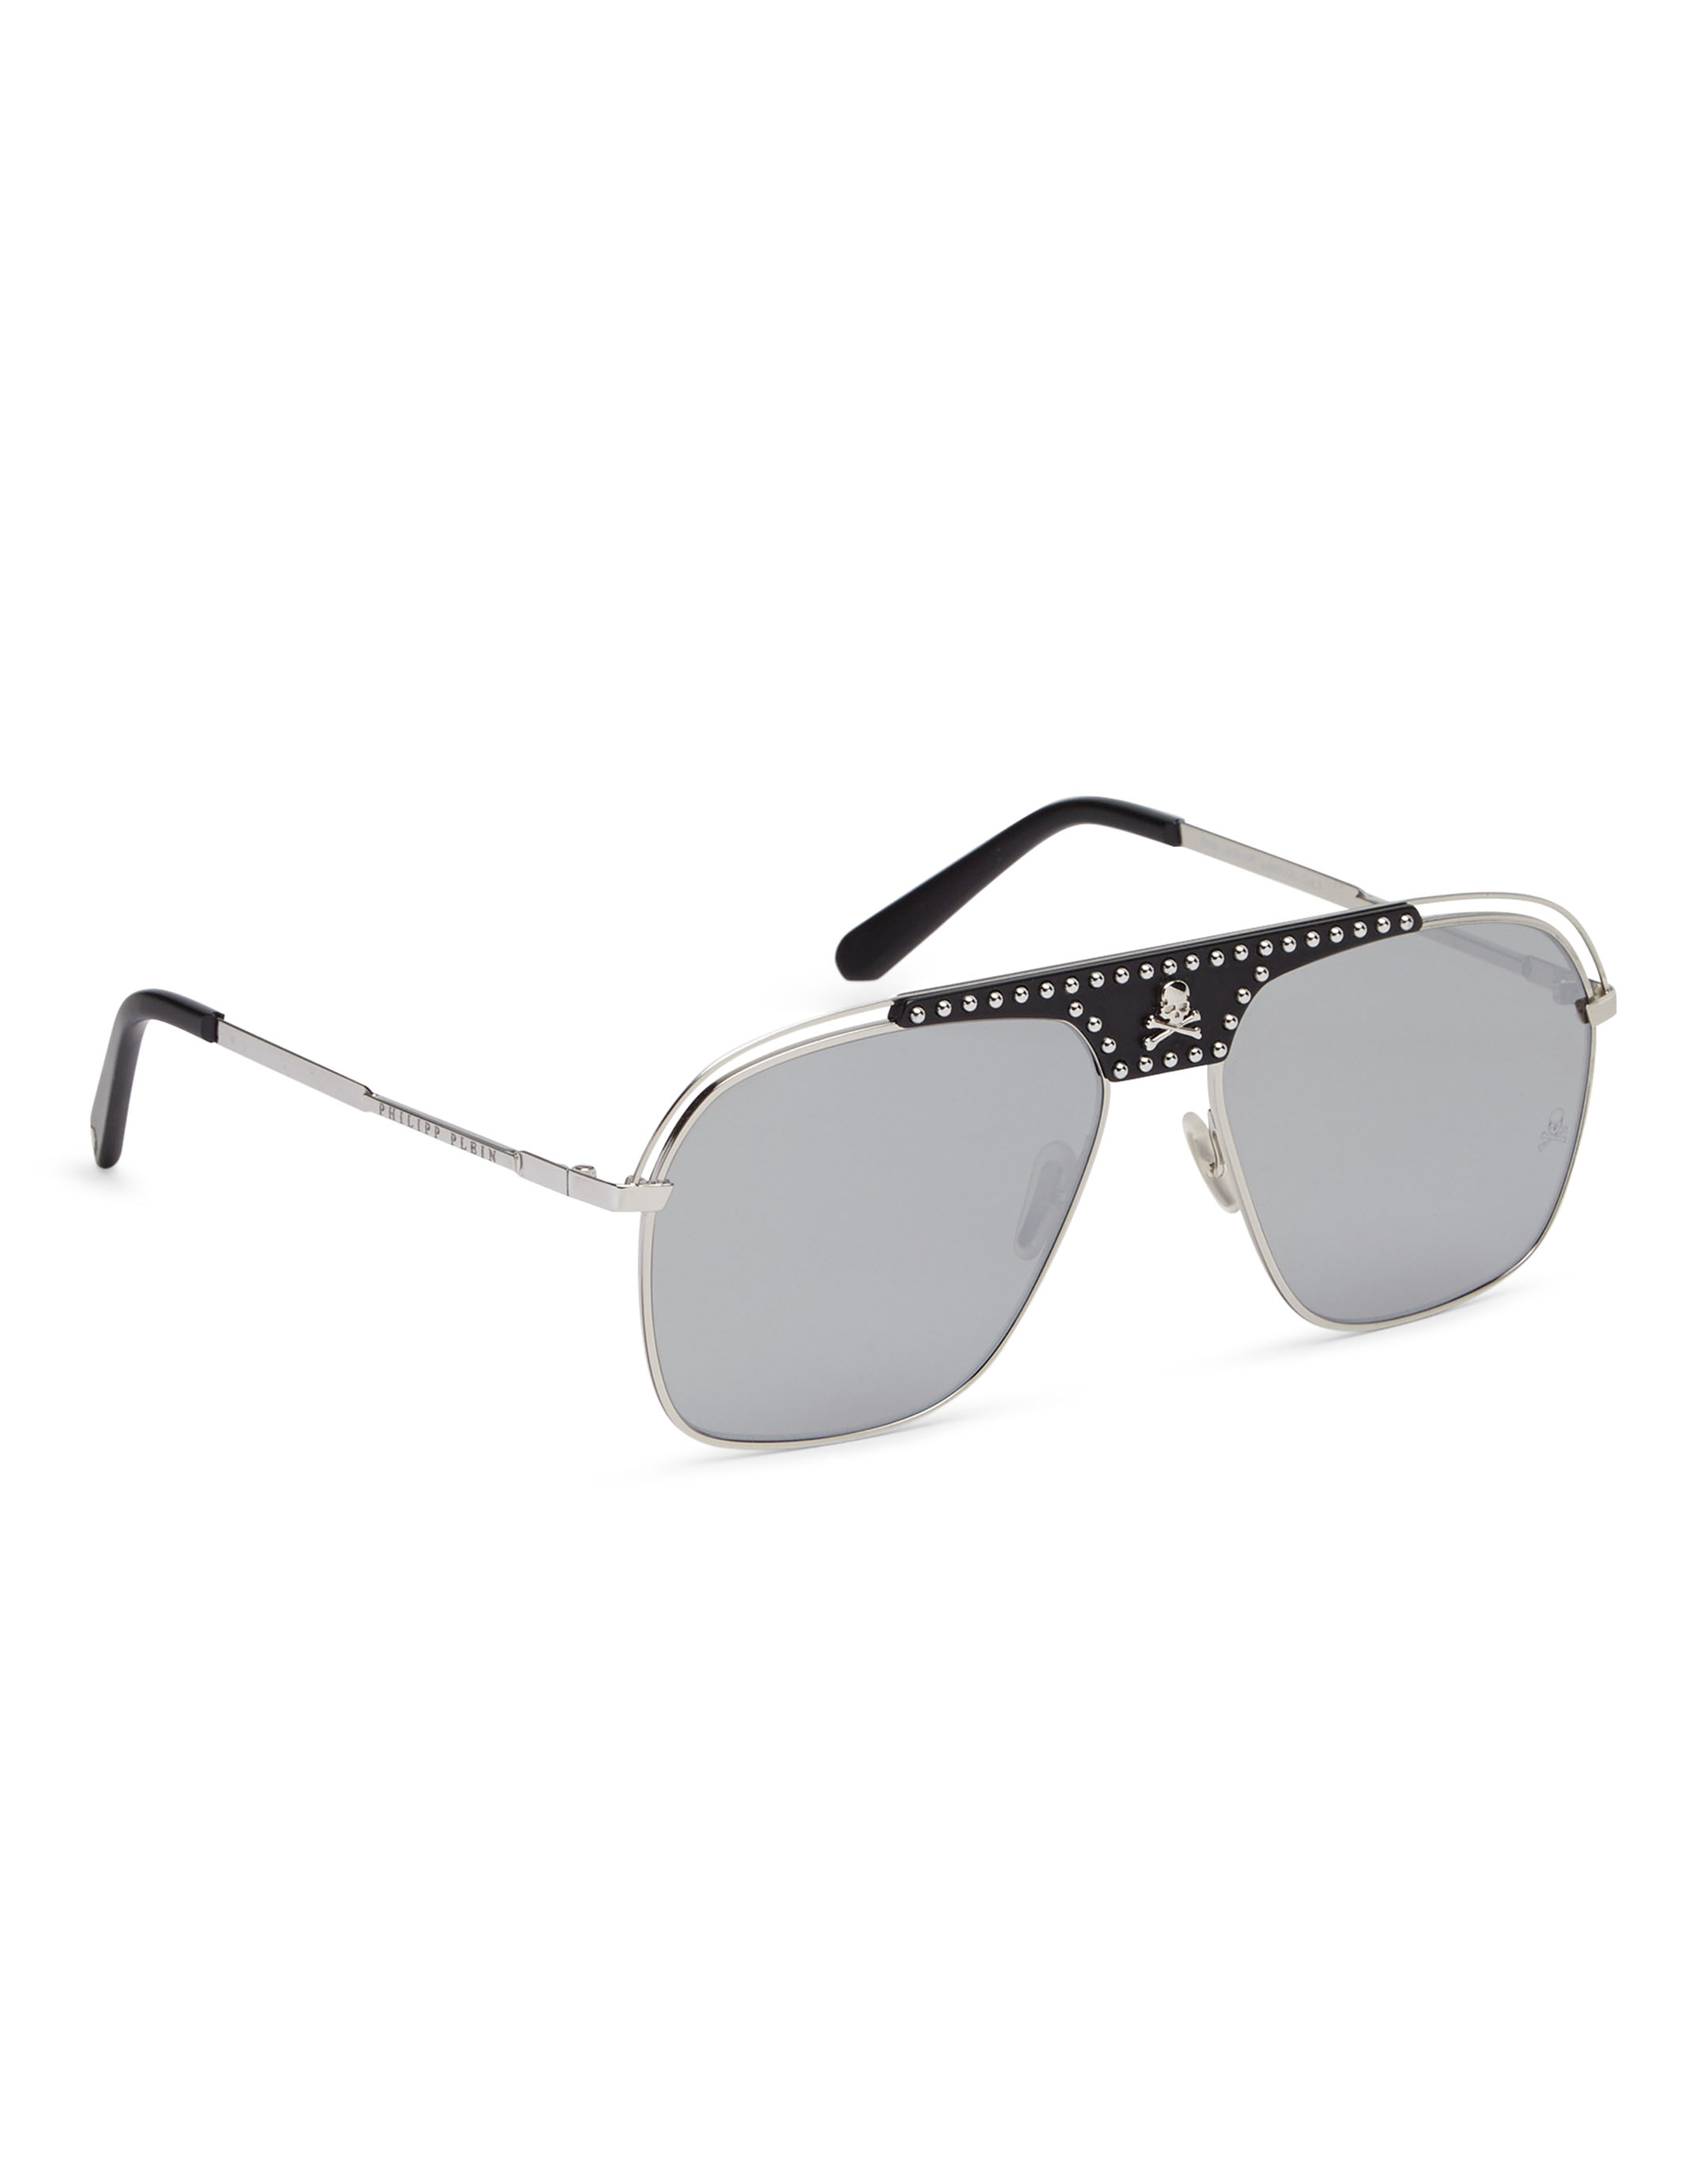 Philipp Plein Sunglasses Noah Studded